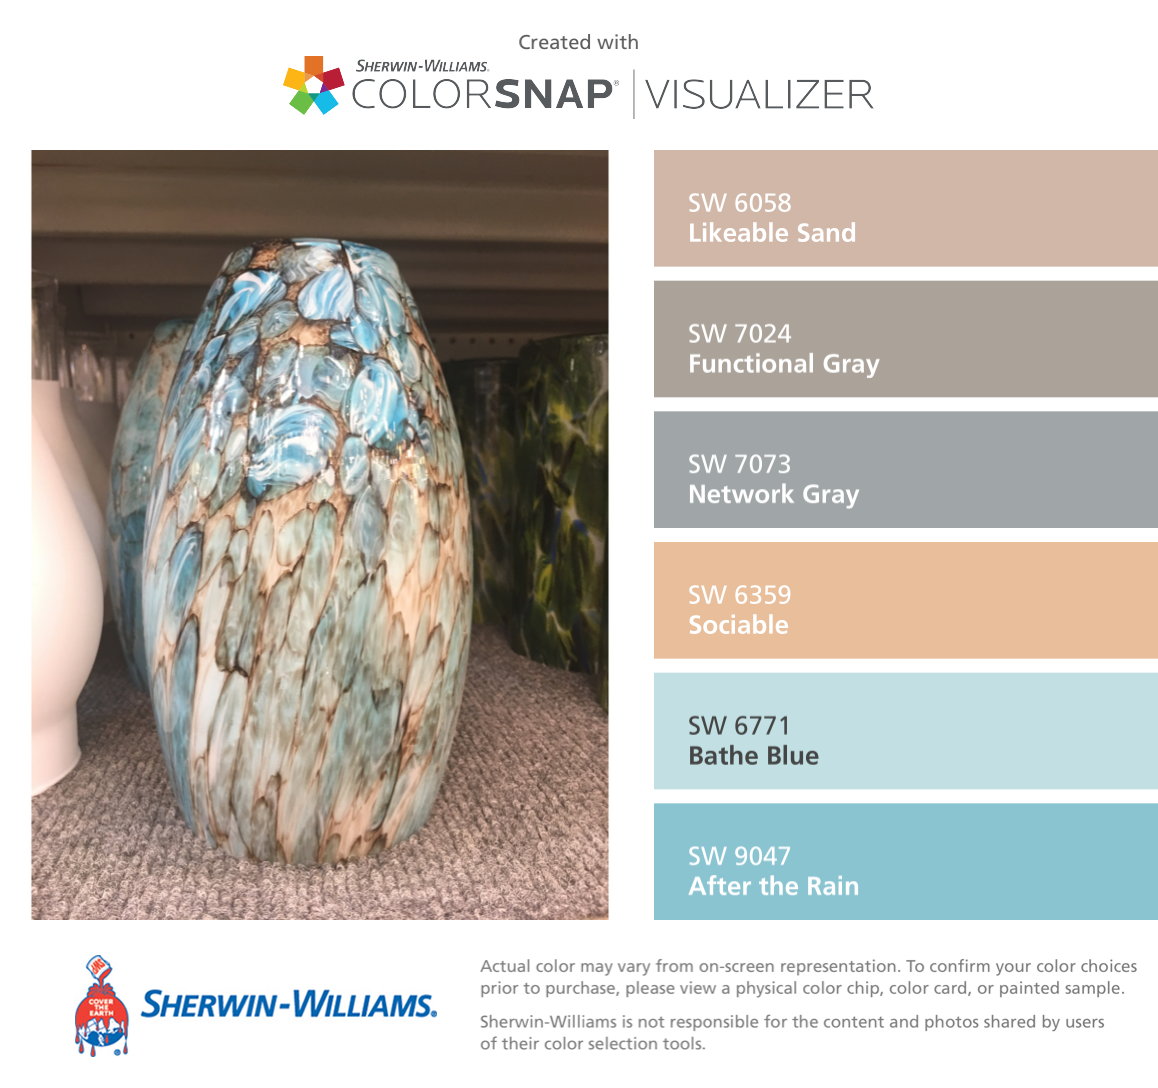 I found these colors with ColorSnap® Visualizer for iPhone by Sherwin-Williams: Likeable Sand (SW 6058), Functional Gray (SW 7024), Network Gray (SW 7073), Sociable (SW 6359), Bathe Blue (SW 6771), After the Rain (SW 9047). #cityloftsherwinwilliams I found these colors with ColorSnap® Visualizer for iPhone by Sherwin-Williams: Likeable Sand (SW 6058), Functional Gray (SW 7024), Network Gray (SW 7073), Sociable (SW 6359), Bathe Blue (SW 6771), After the Rain (SW 9047). #cityloftsherwinwilliams #cityloftsherwinwilliams